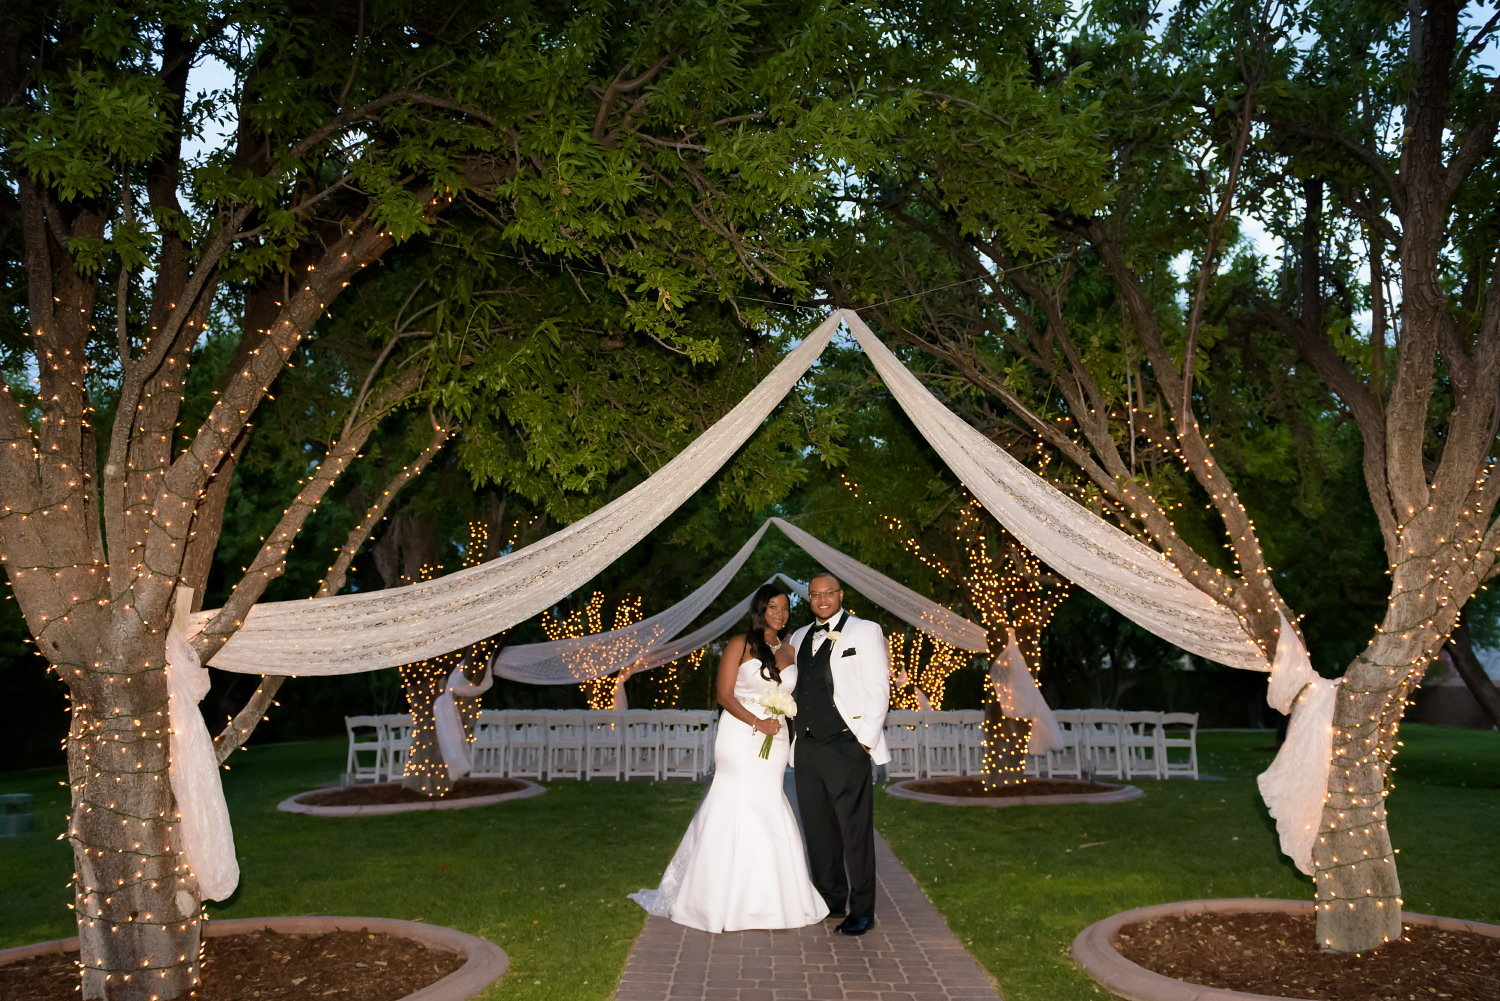 All-Inclusive Wedding Packages - Vegas Weddings Planner